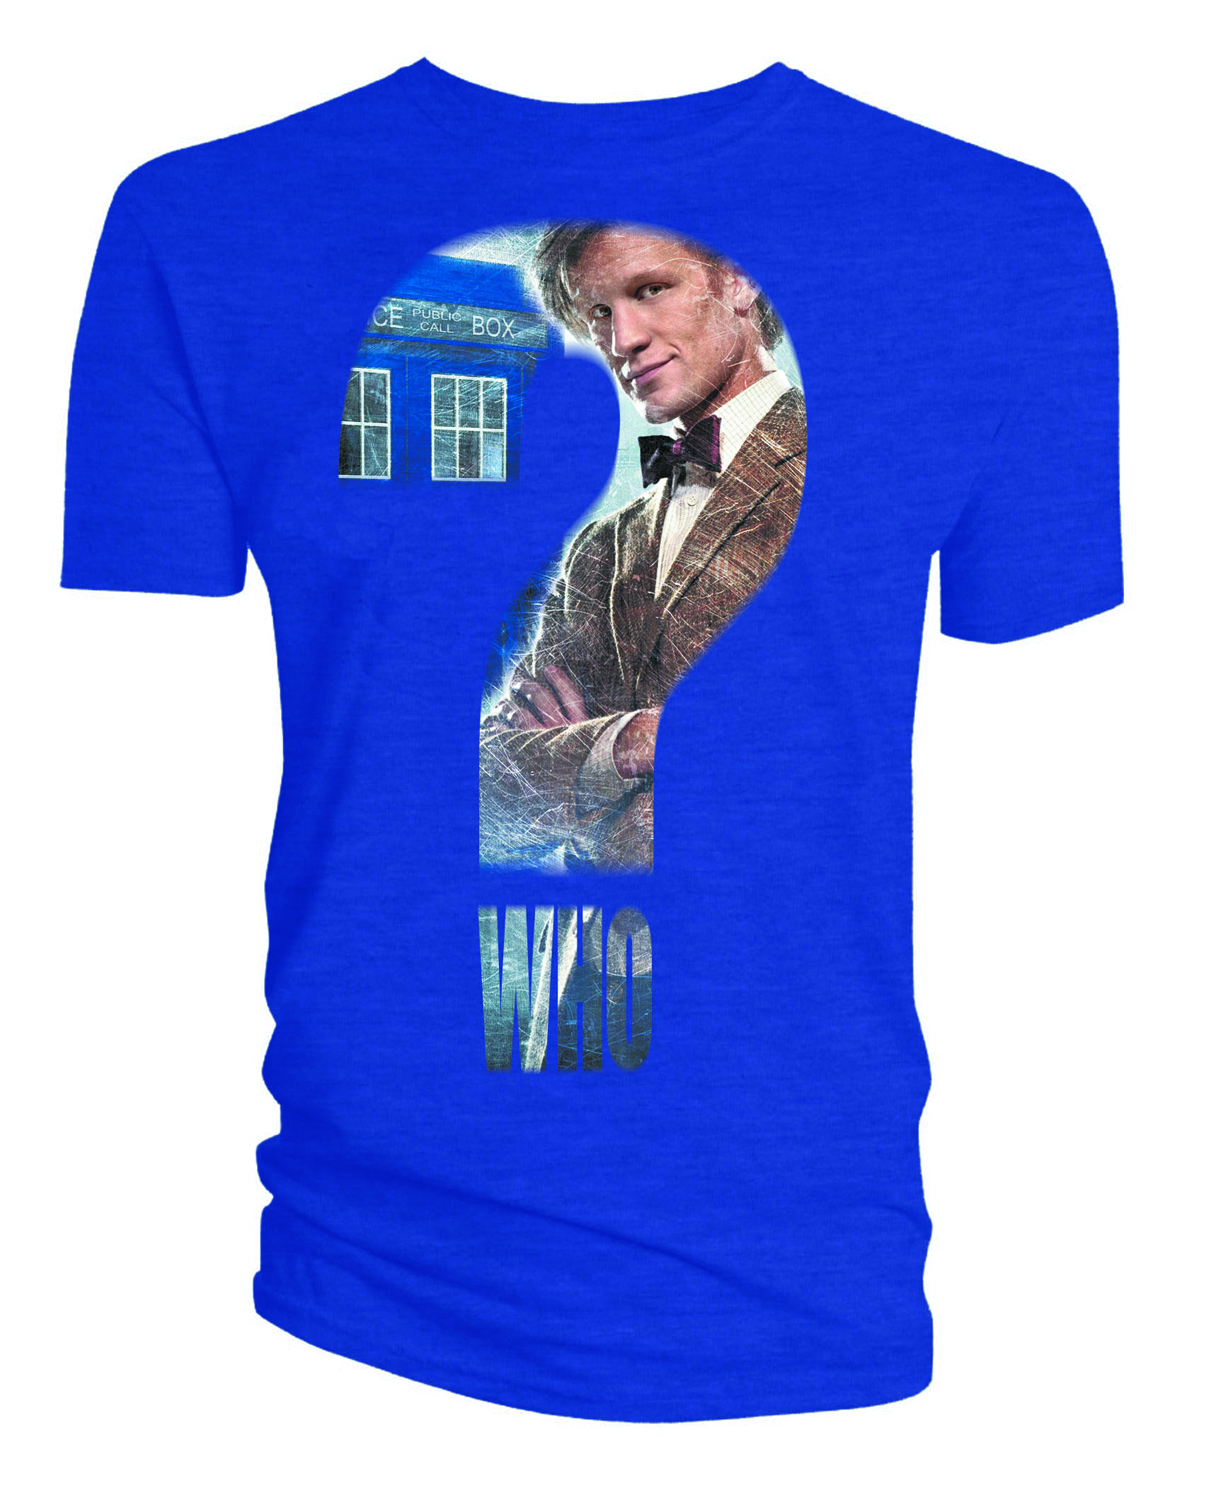 DOCTOR WHO QUESTION MARK BLUE T/S MED